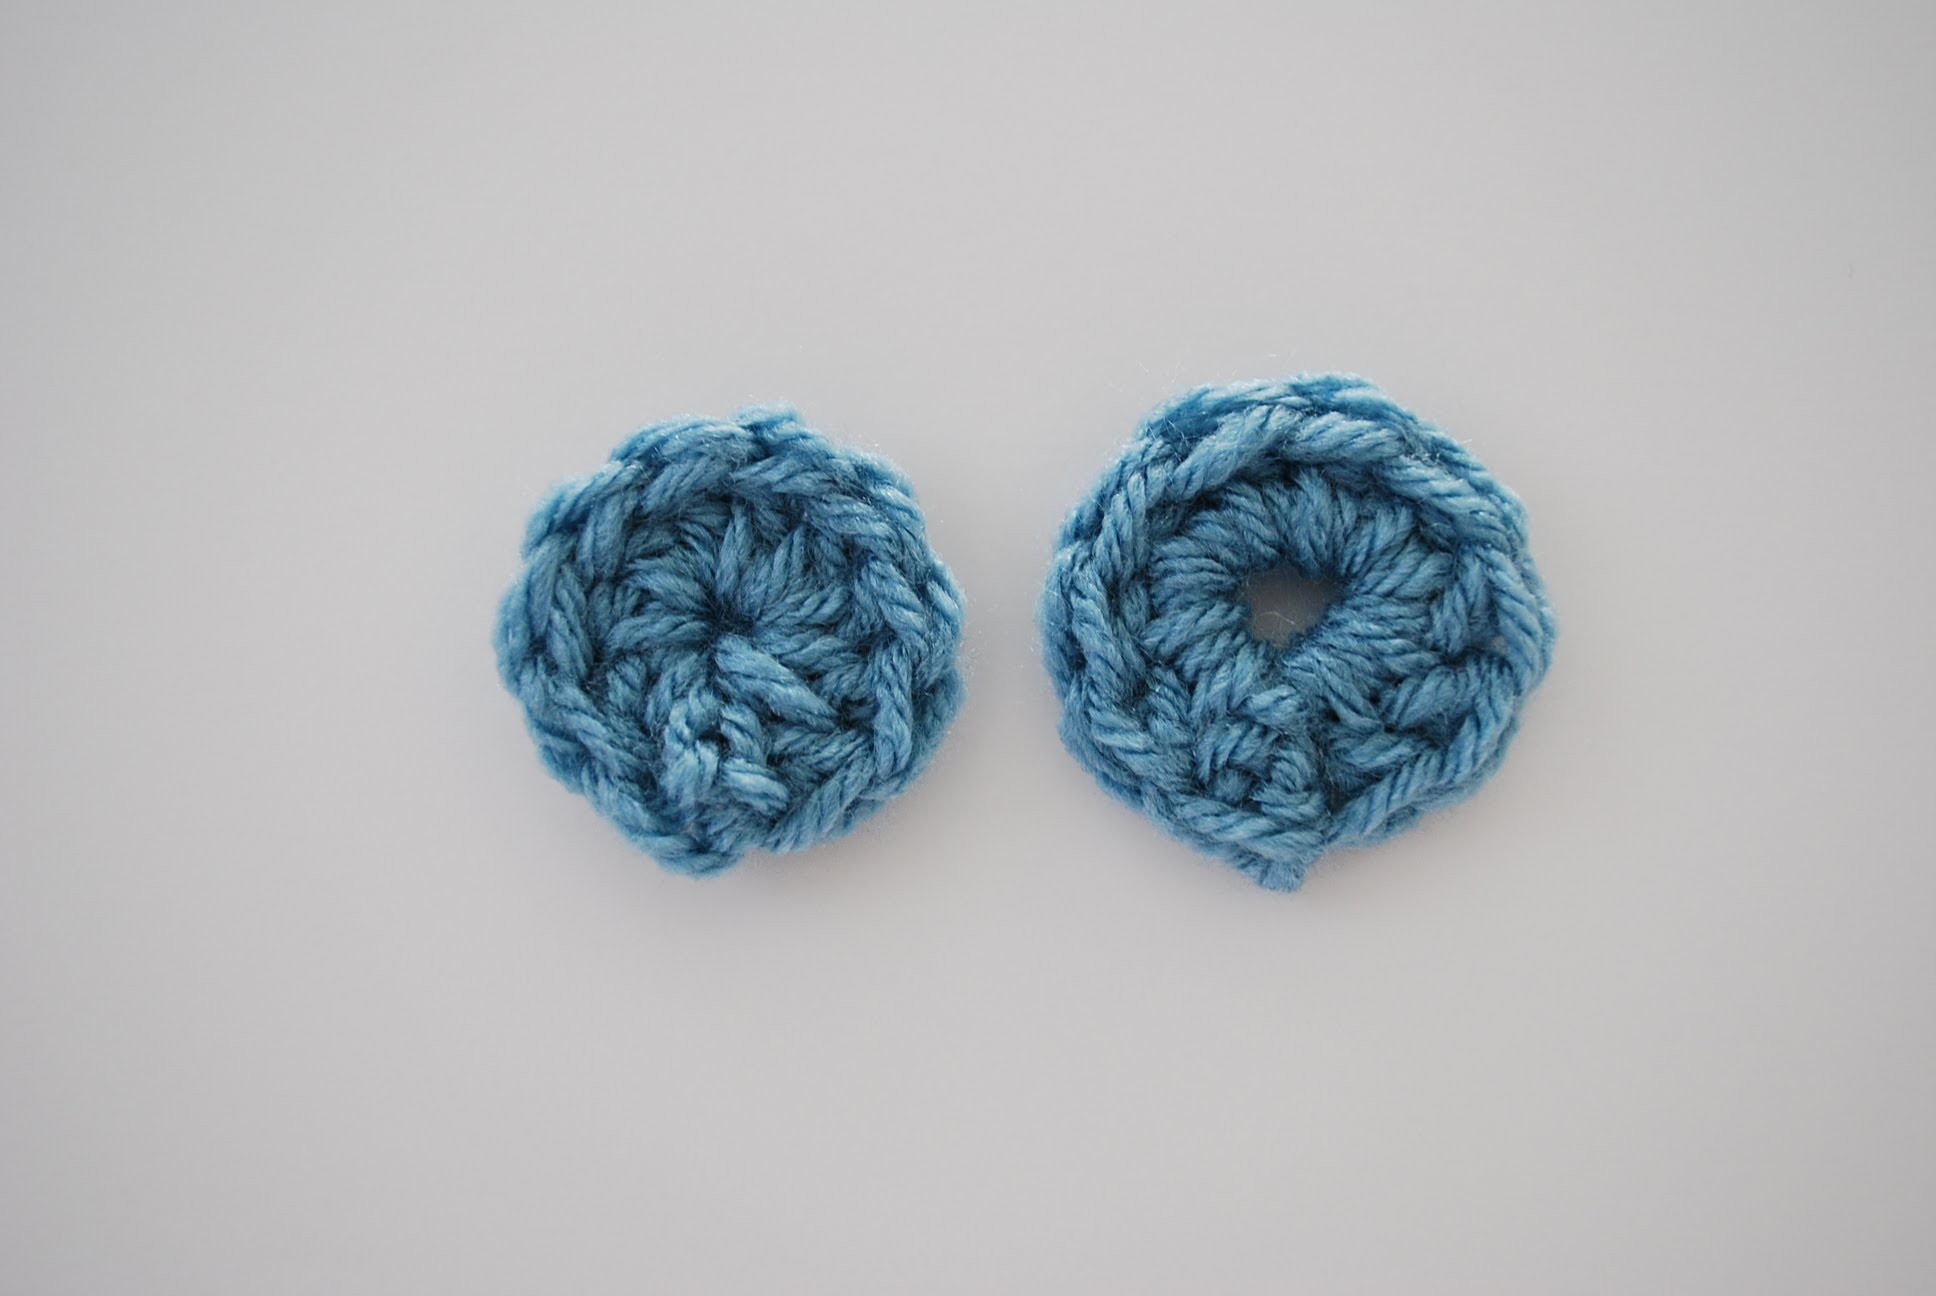 How to Crochet in the Round: Starting Methods: Magic Ring, Chain Method